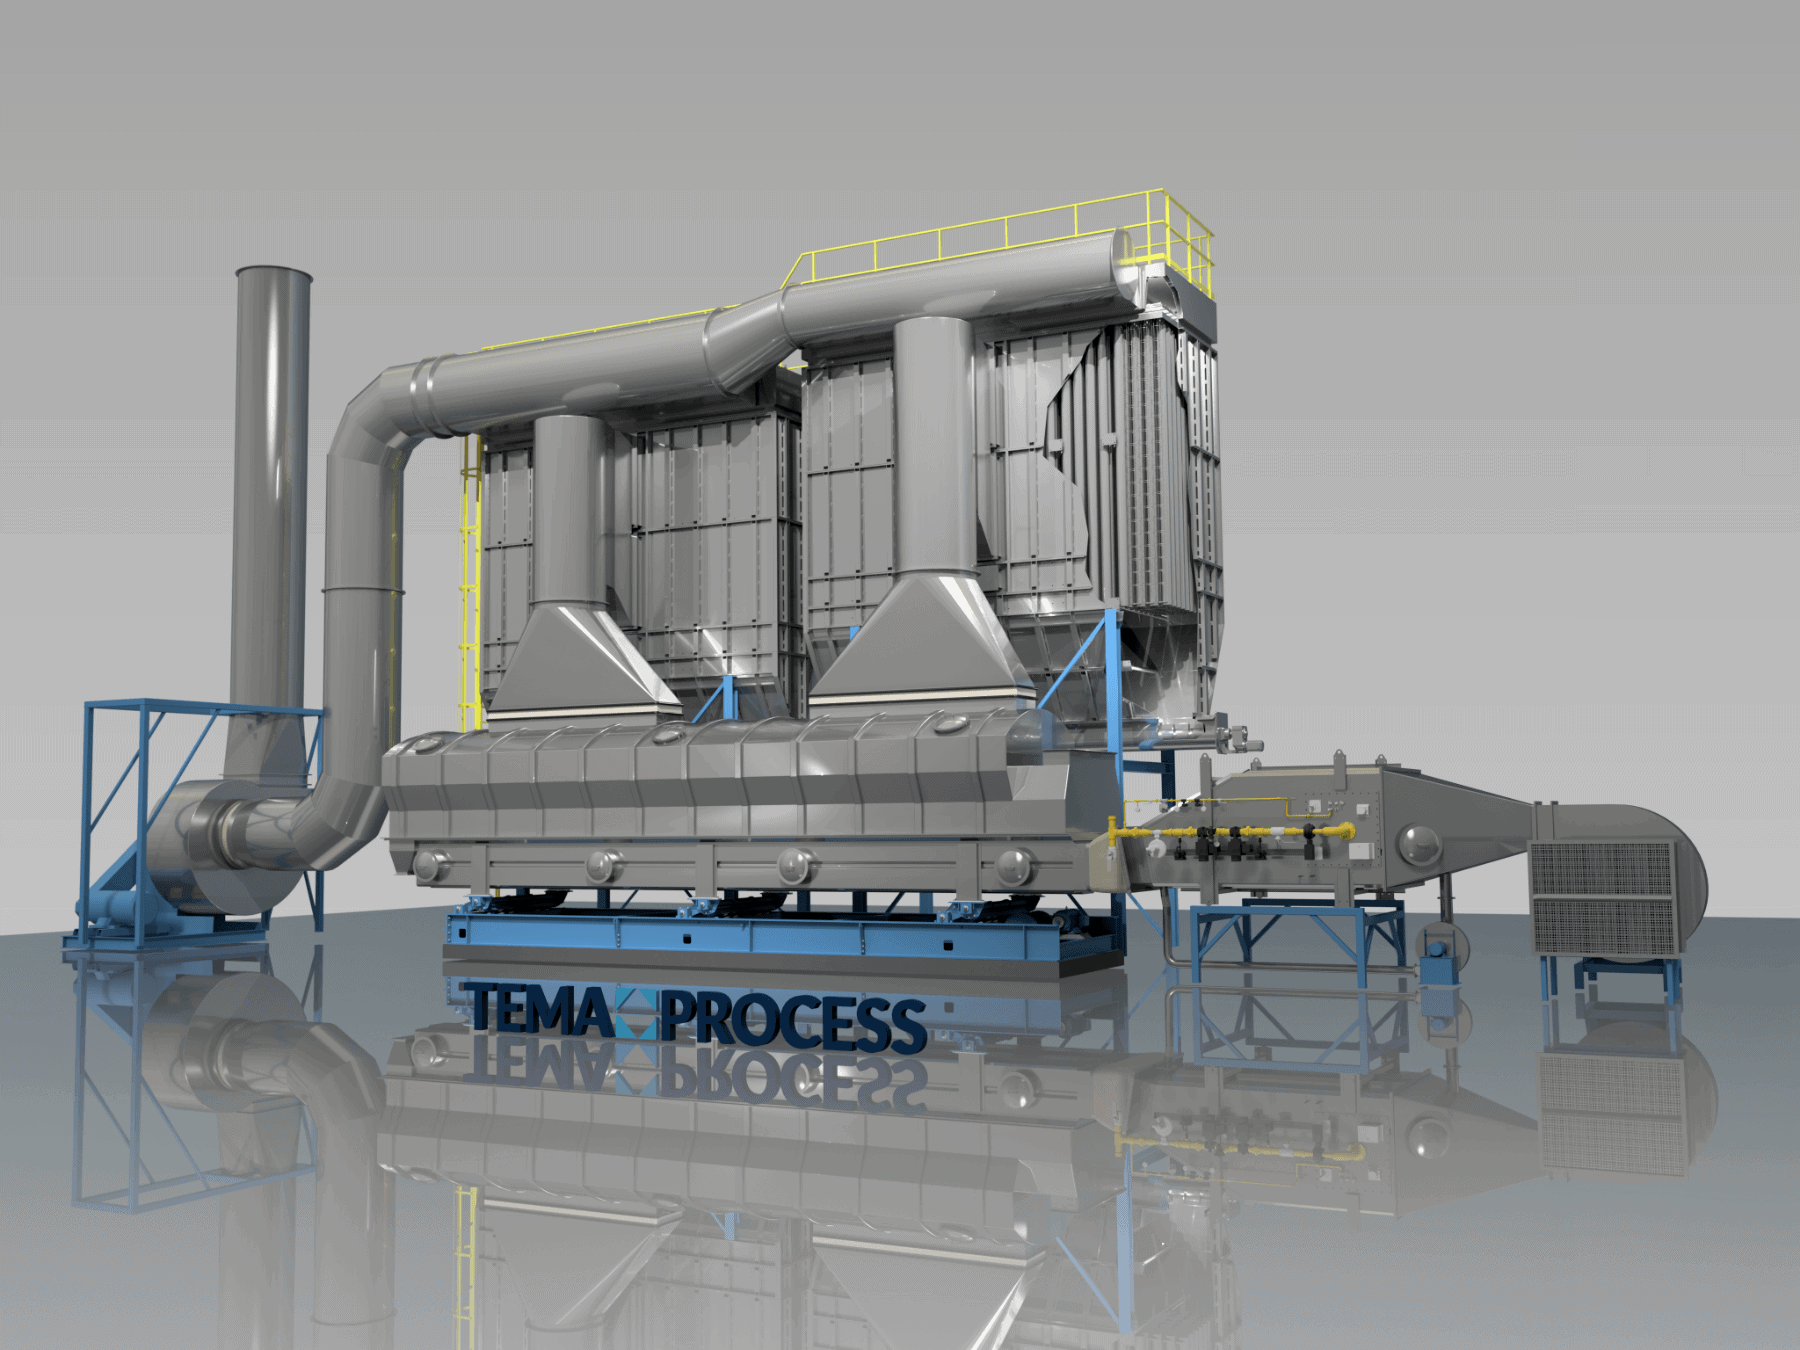 Tema process fluid bed dryer